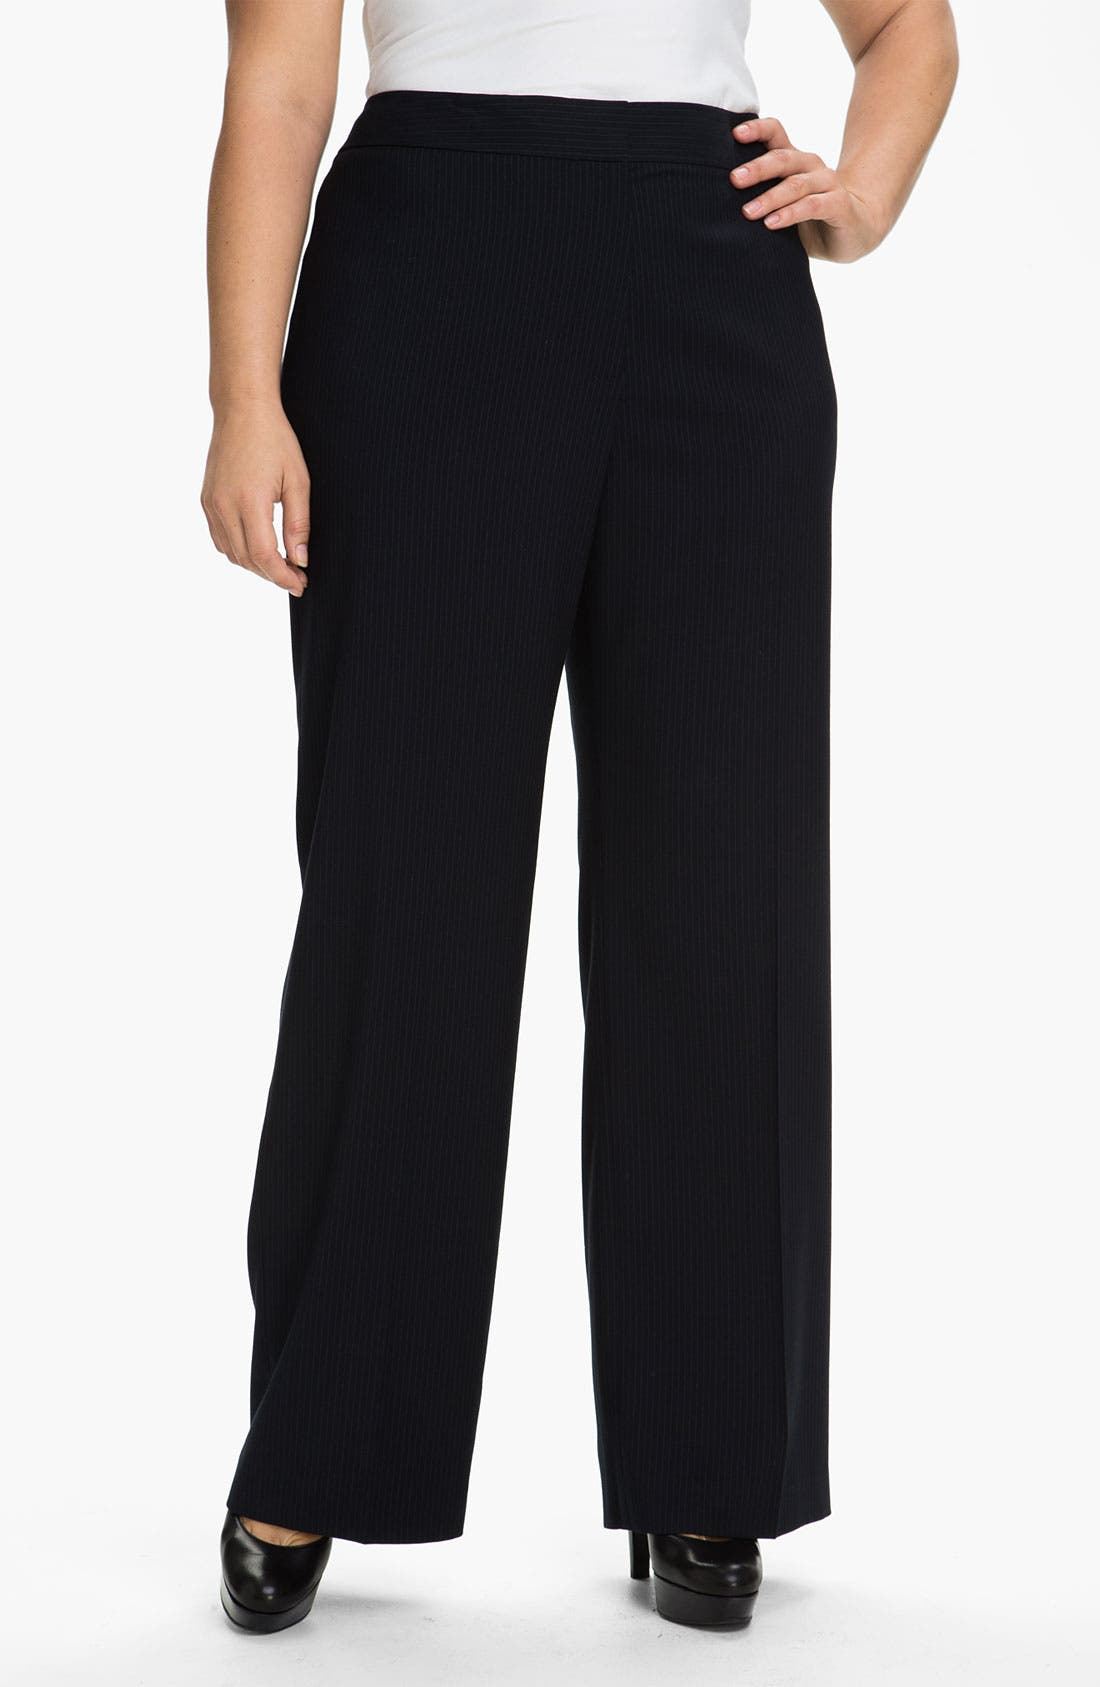 Alternate Image 1 Selected - Tahari Woman 'Hazel' Straight Leg Pants (Plus)